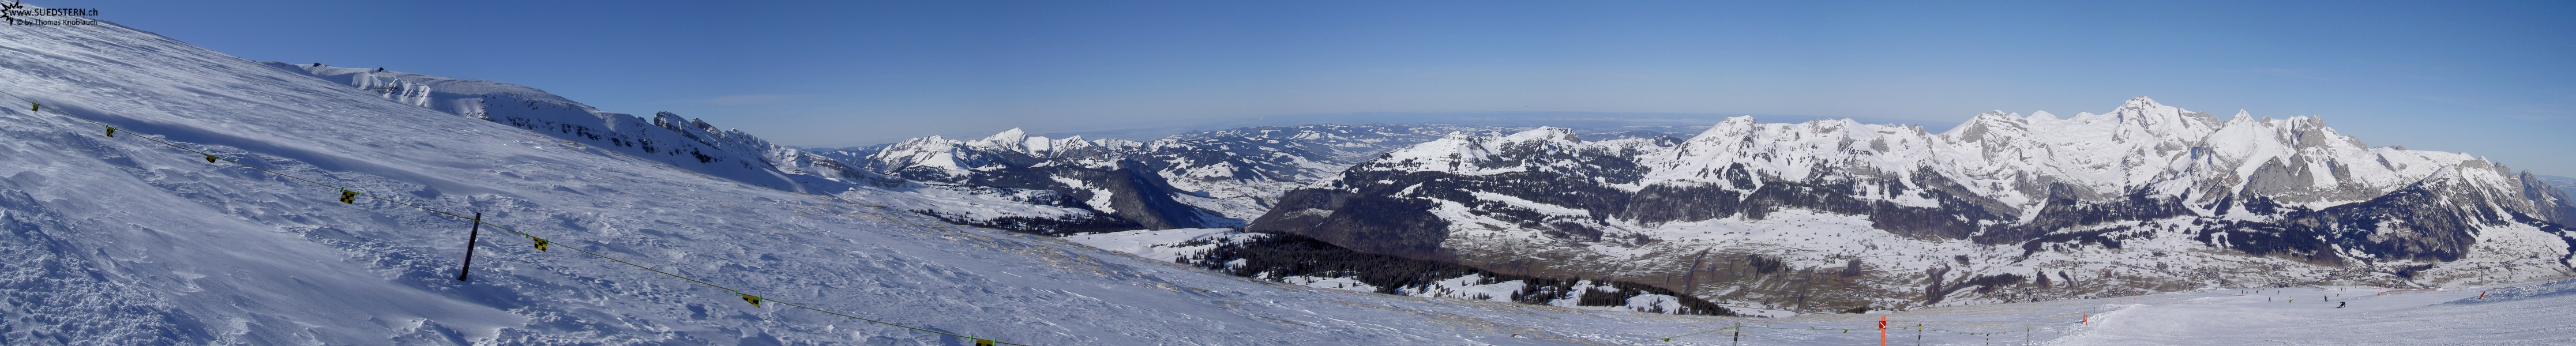 2008-02-03 - Panorama of Säntis-Mountains, Switzerland